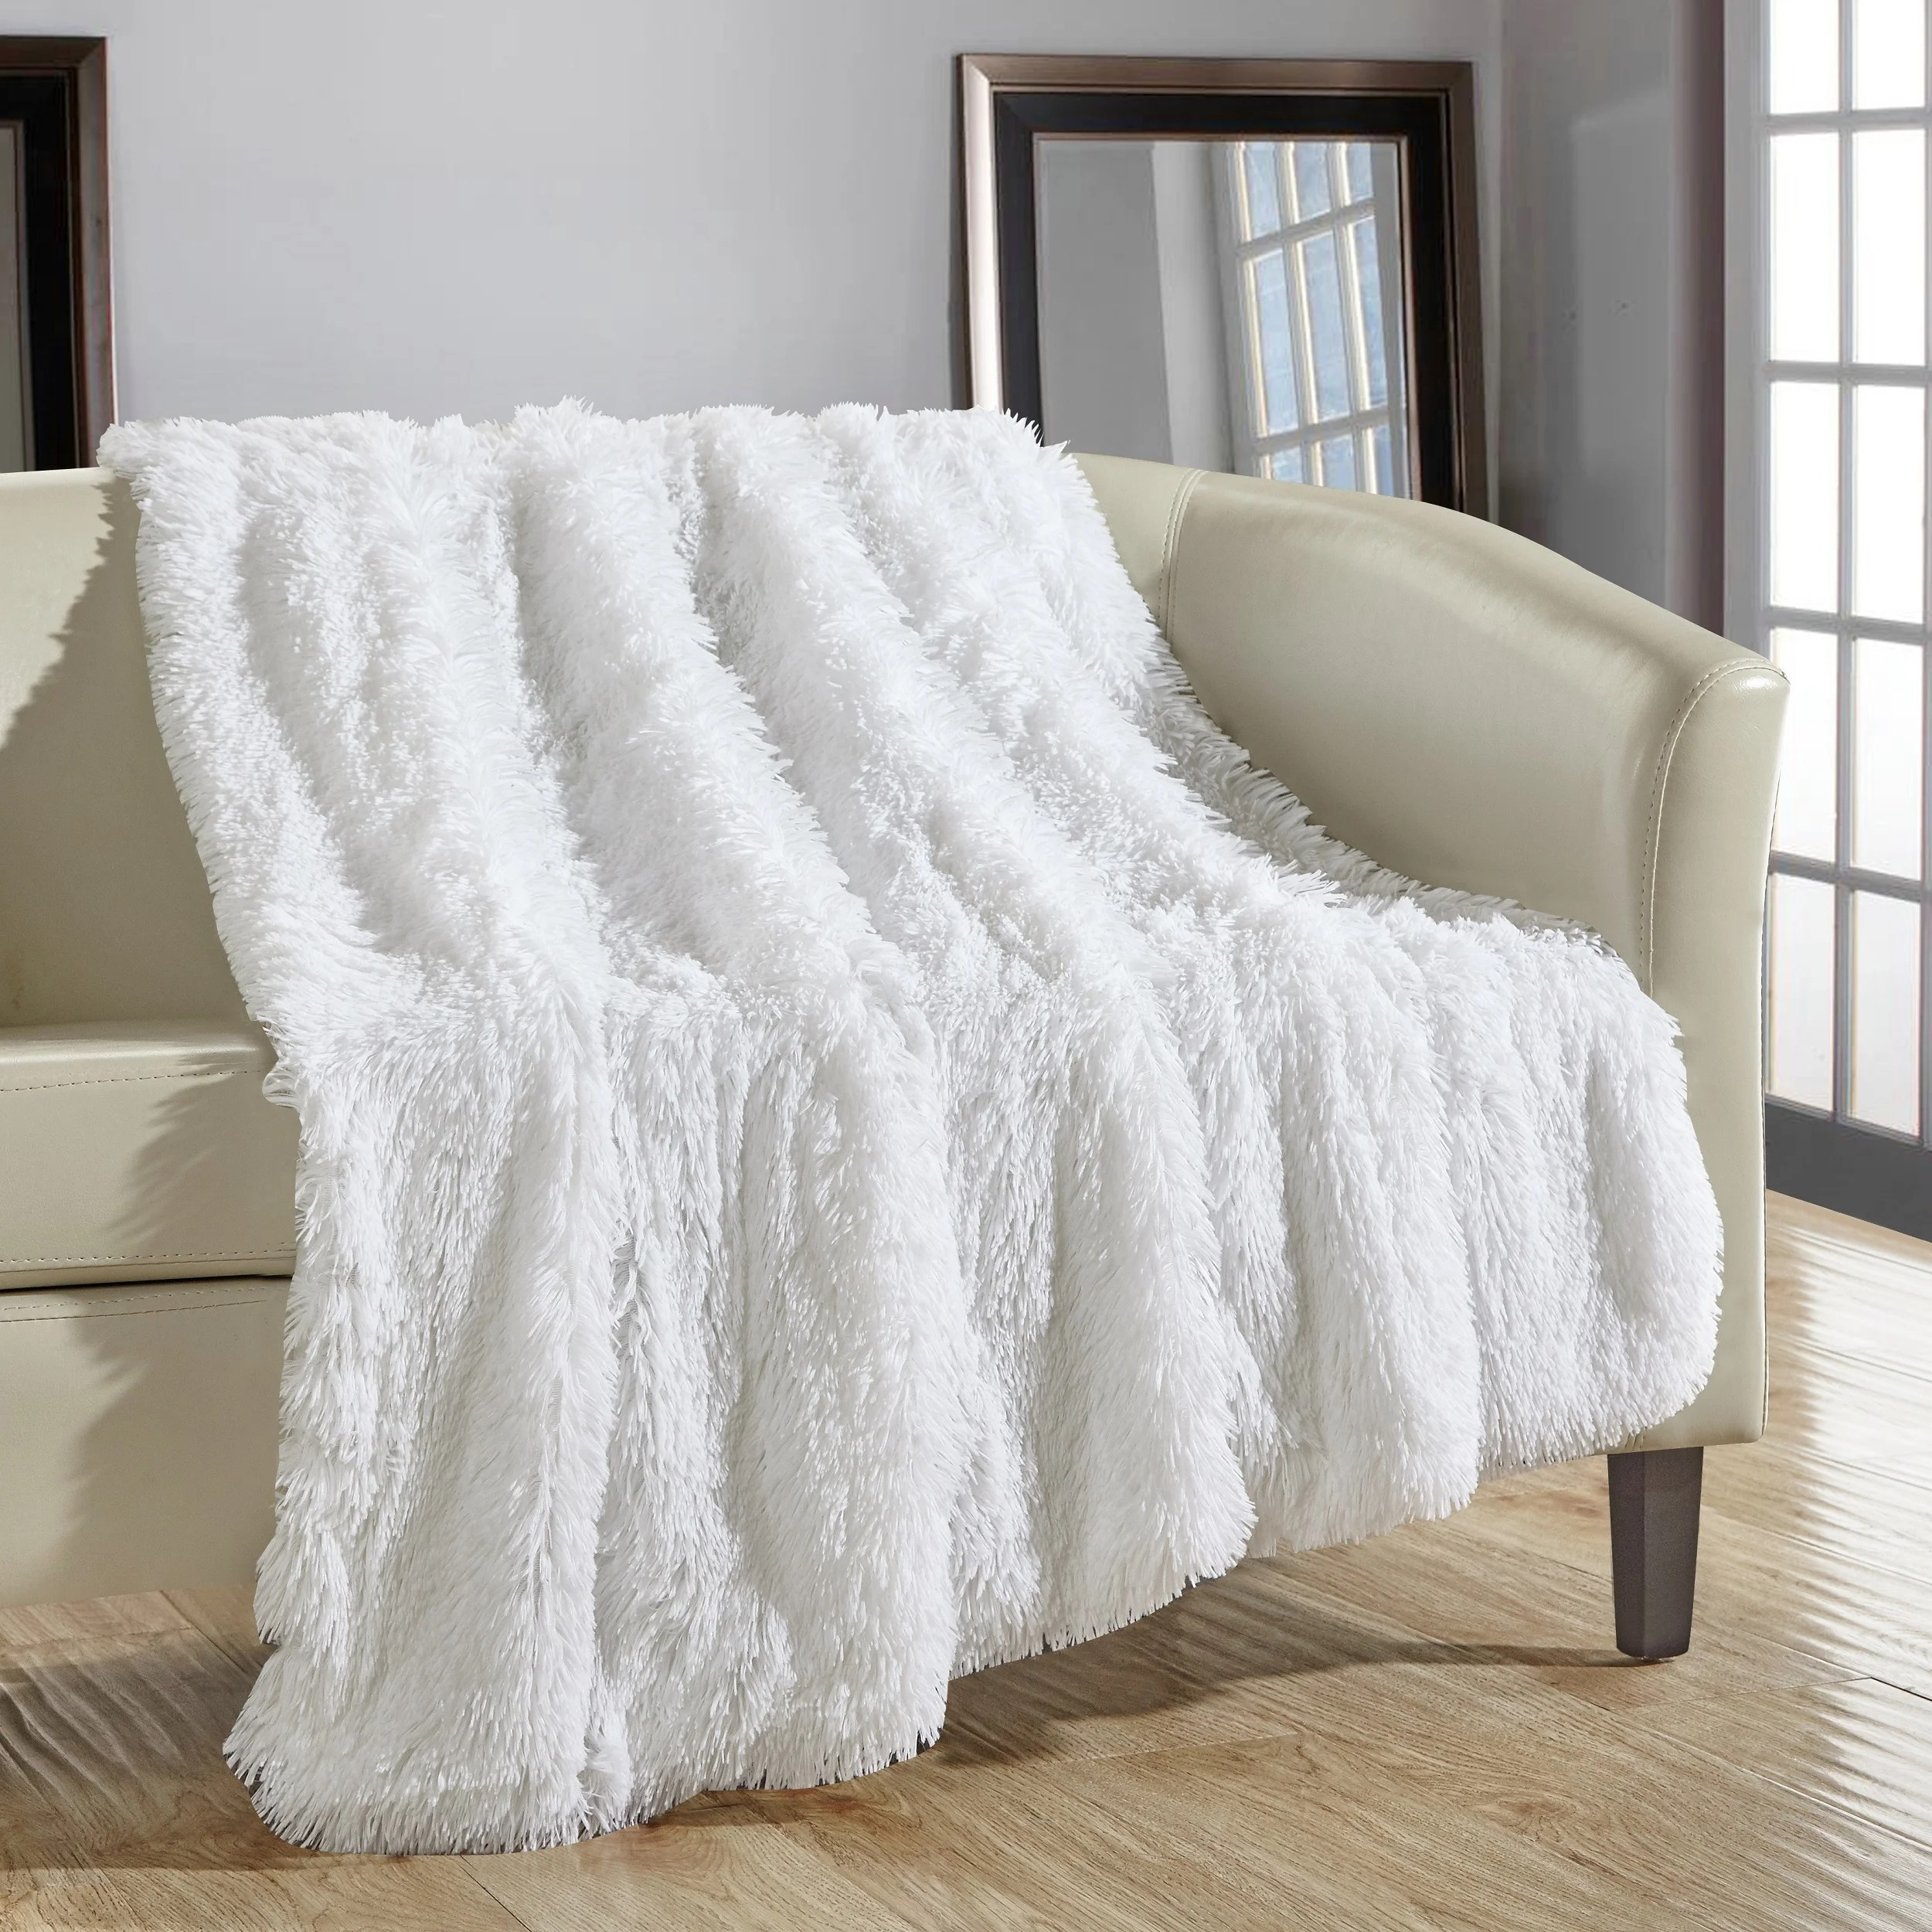 Throw Blankets Chic Home Juneau Faux Fur White Throw Blanket